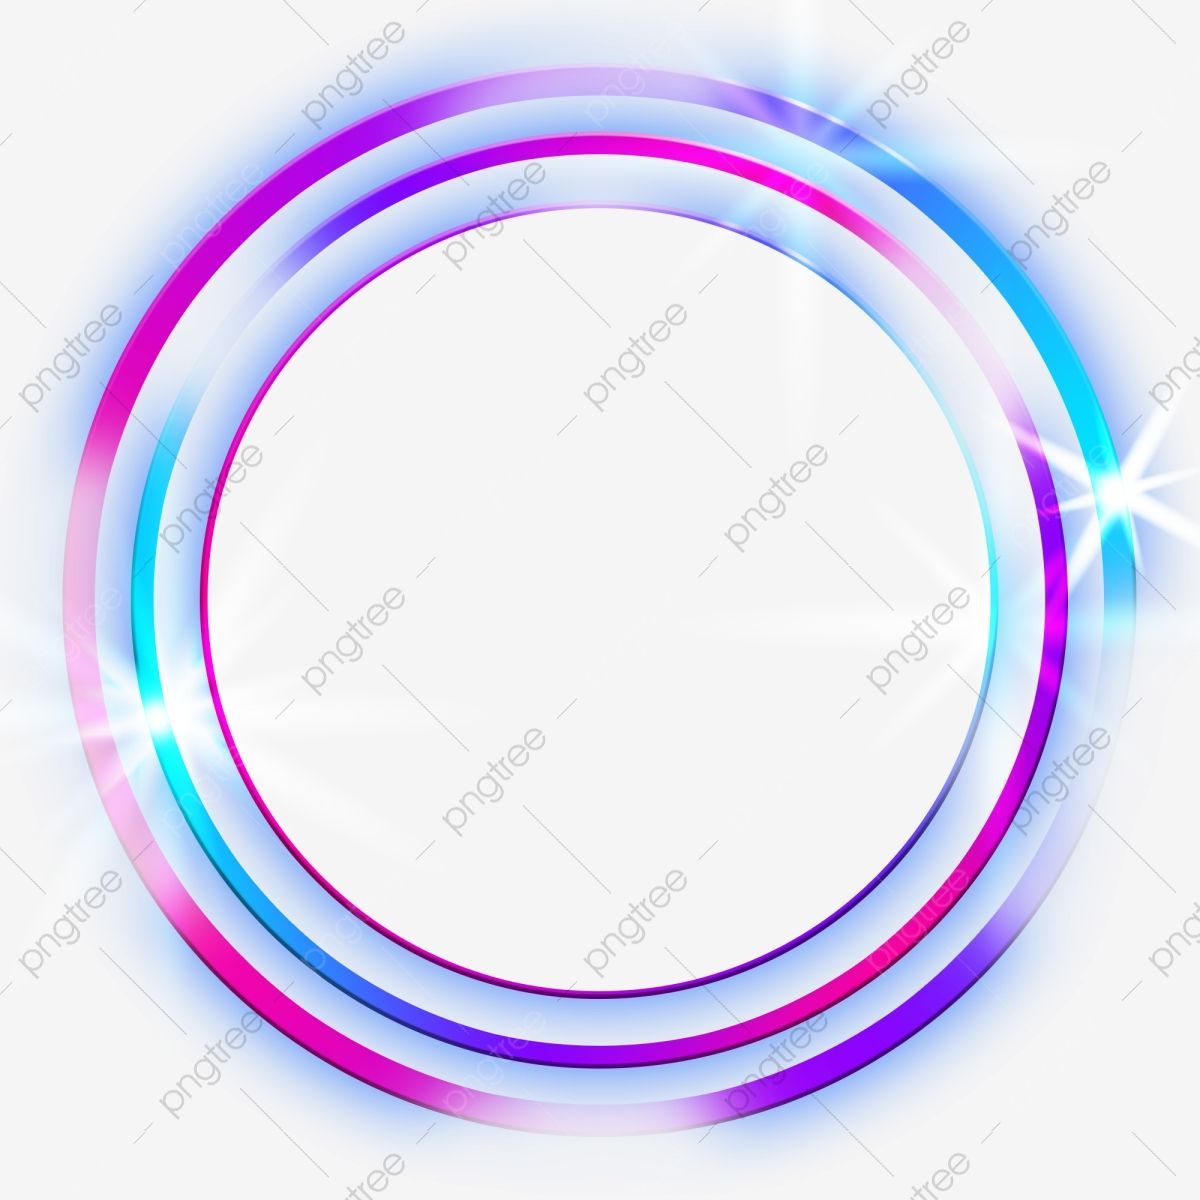 Color High Gloss Aperture Ring Light Effect Glow Halo Aperture Ring Glow Png Transparent Clipart Image And Psd File For Free Download Light Background Images Poster Background Design Clip Art